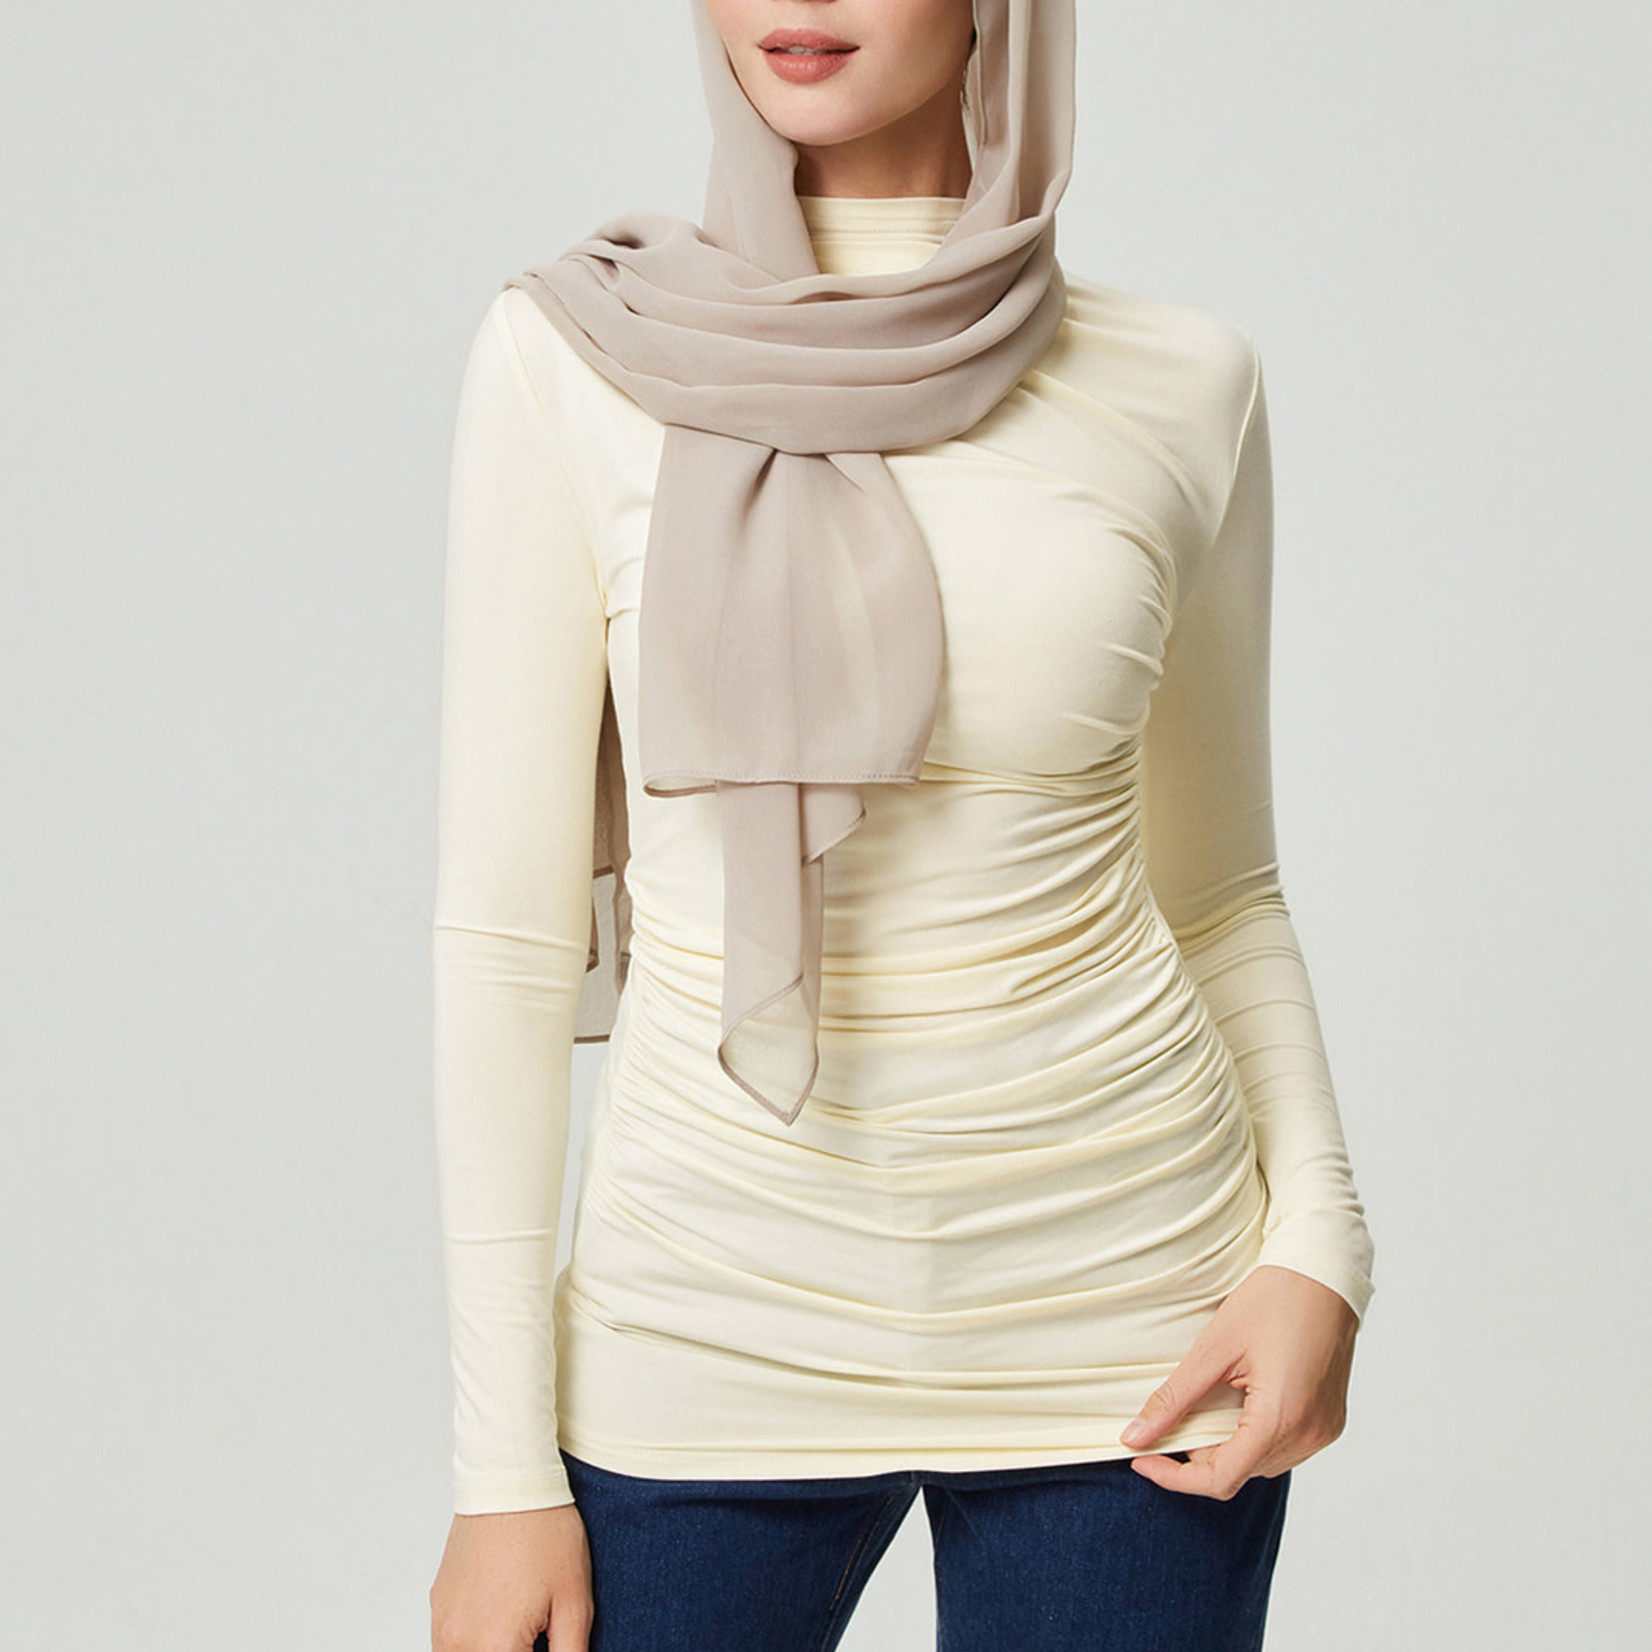 Hijab House Ruched Cream Top